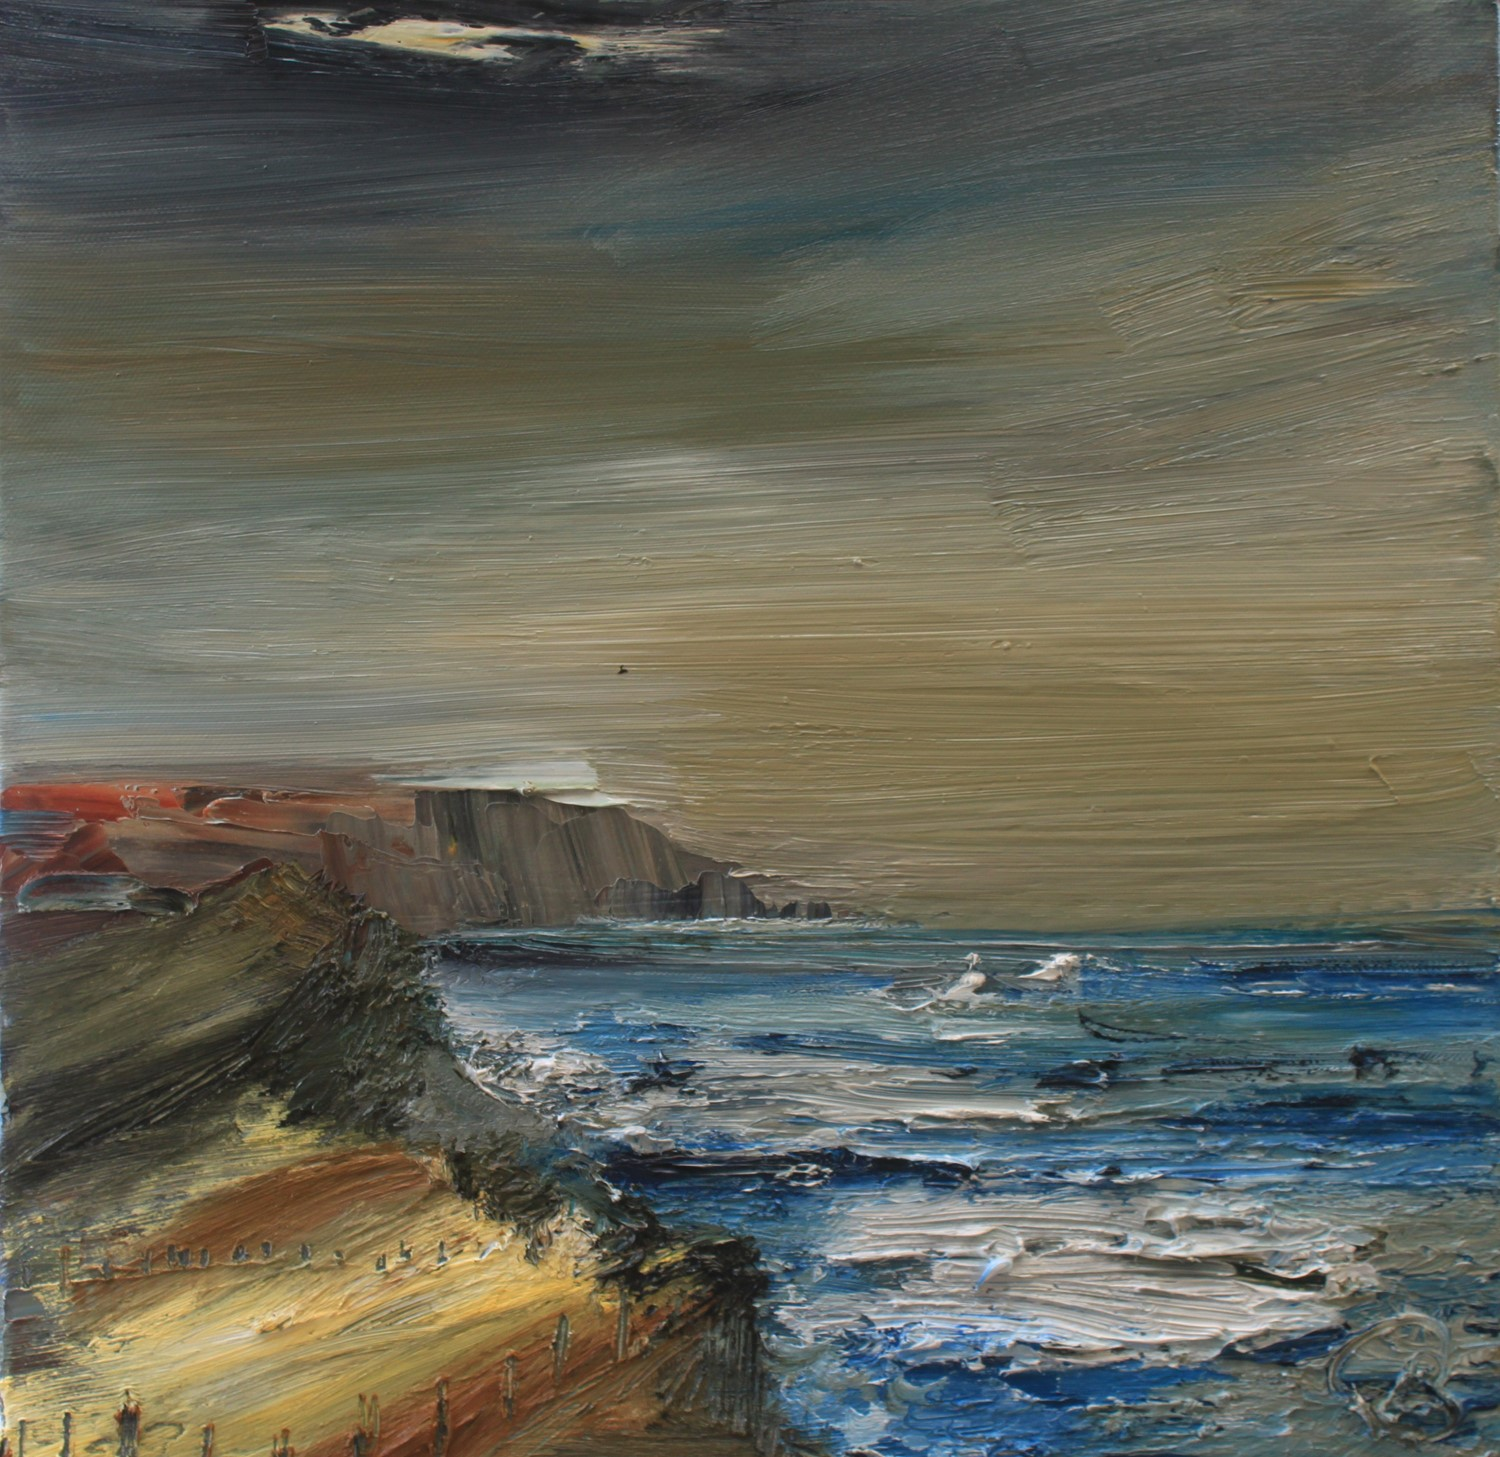 'The Cliffs of Orkney' by artist Rosanne Barr